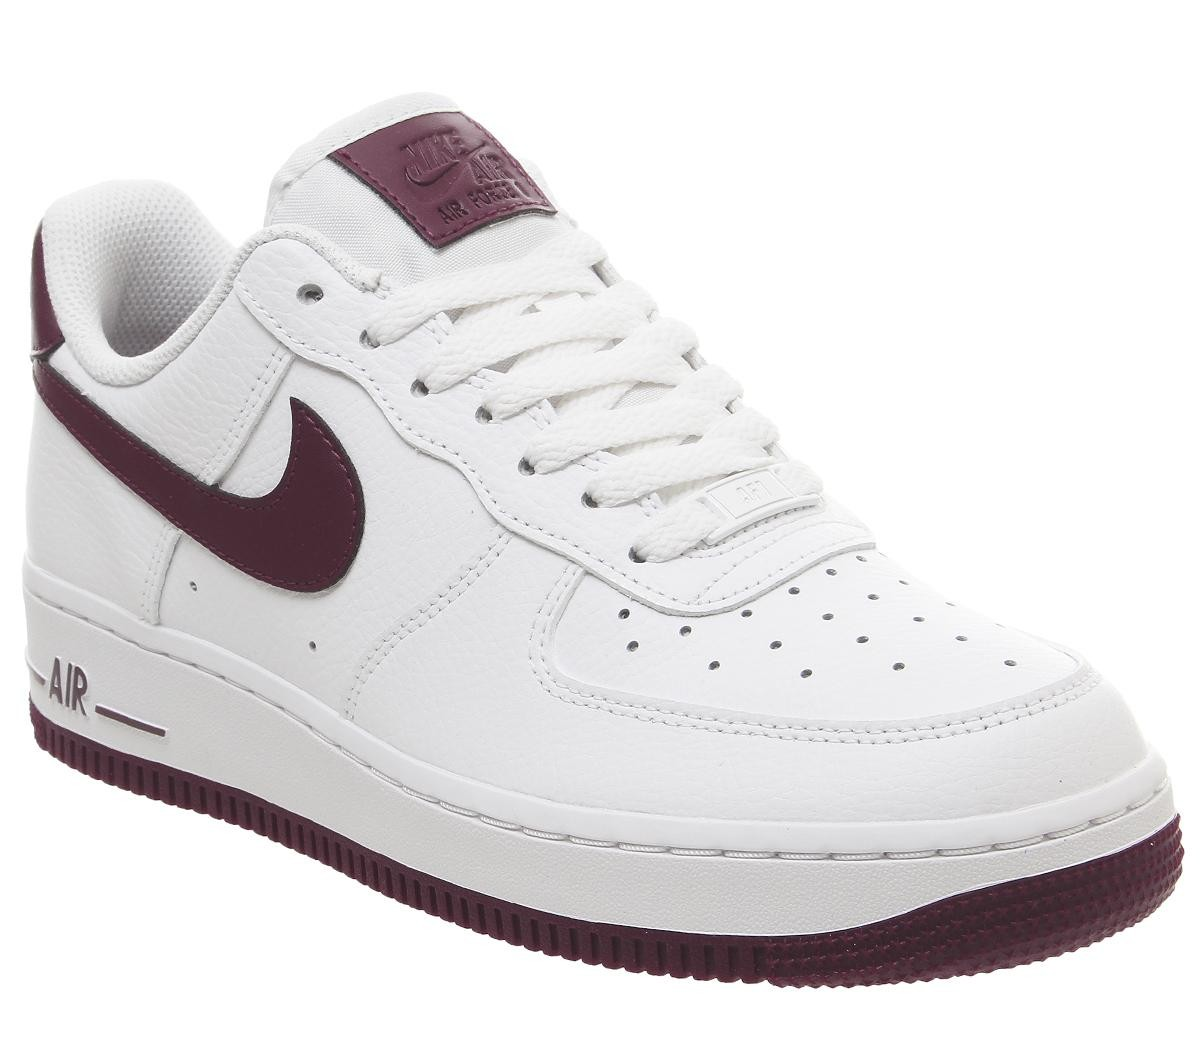 air force 1 bordeaux femme